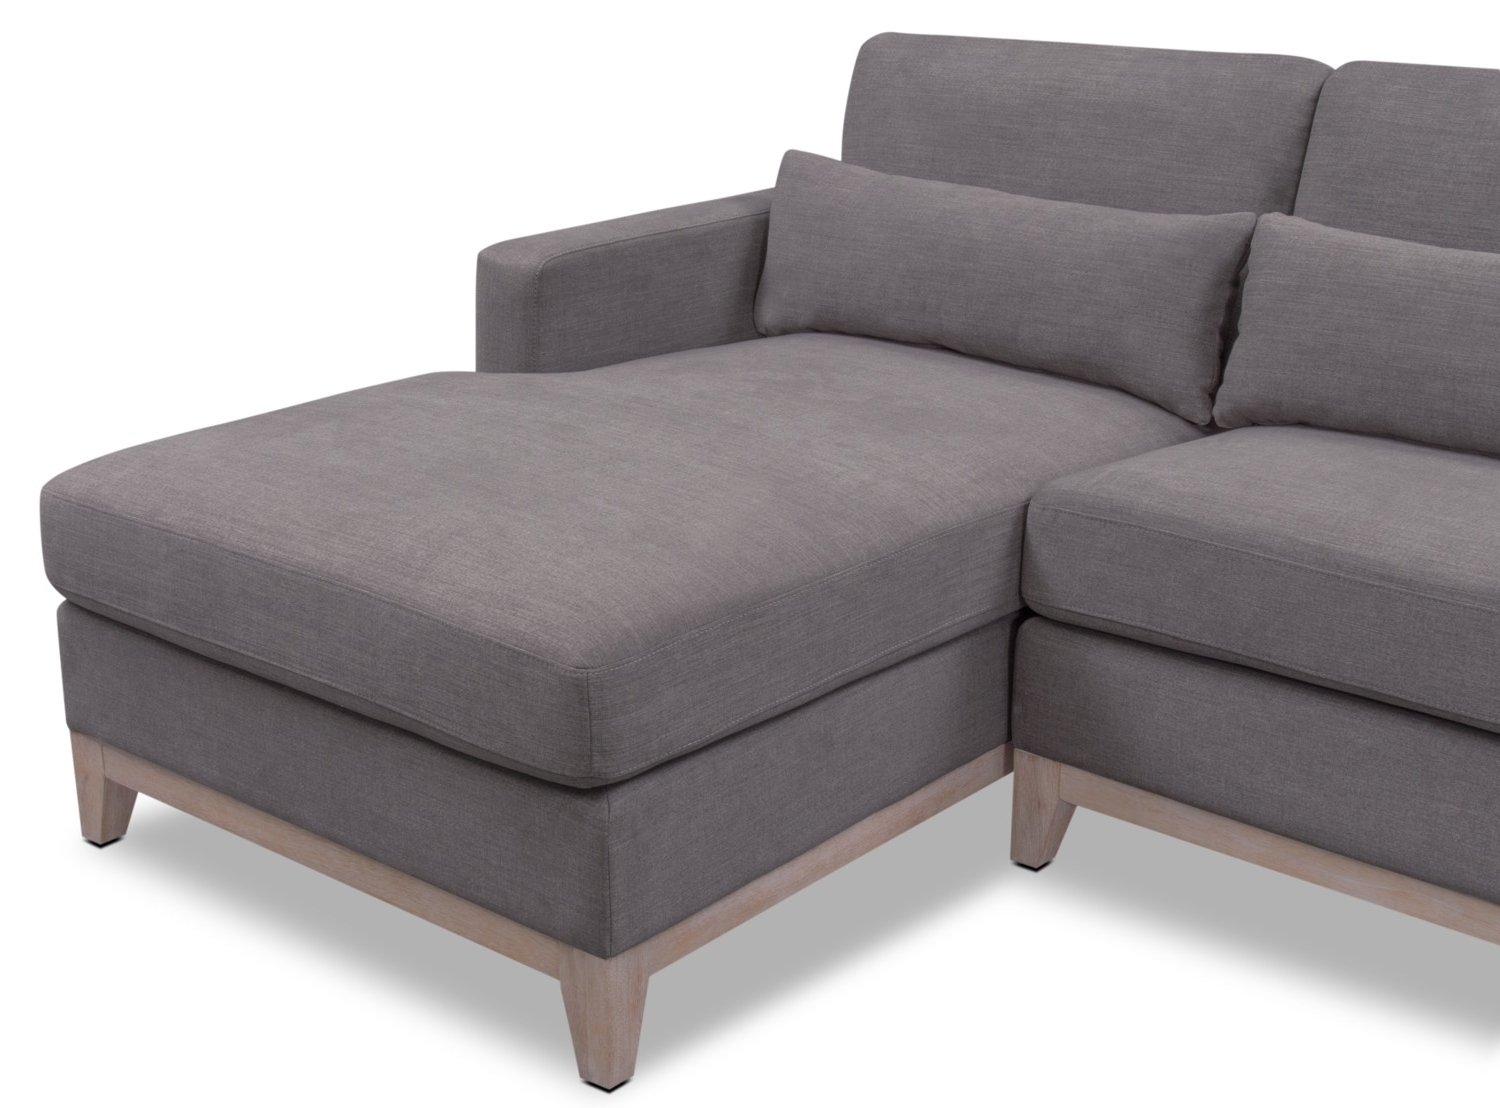 2018 Crosby 2 Piece Sectional With Right Facing Chaise – Gray (View 11 of 15)